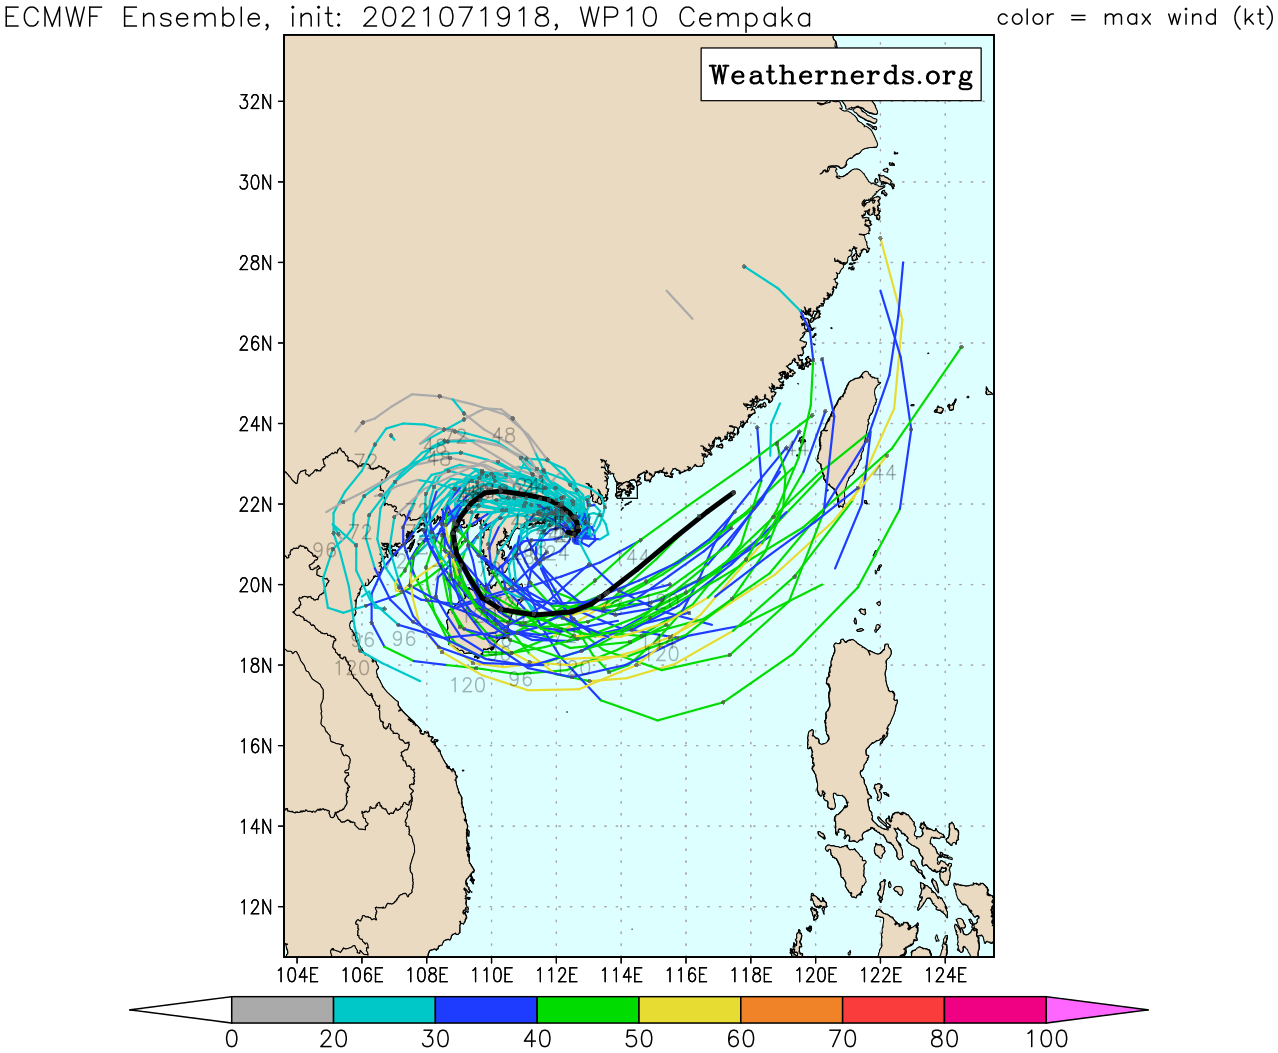 TY 10W(CEMPAKA).MODEL DISCUSSION: NUMERICAL MODELS ARE IN UNISON WITH THE TIGHT U-TURN FORECAST TRACK, ALBEIT IN VARYING DEGREES AND SPEED WITH NVGM OFFERING THE TIGHTEST TURN AND GFS AND JGSM ON THE WIDE MARGIN OF THE ENVELOPE. THIS, PLUS GIVEN THE UNCERTAINTY OF LAND INTERACTION AND THE ANTICIPATED STRONG SOUTHWESTERLY MONSOON SURGE IN THE SOUTH CHINA SEA, CONTRIBUTE TO AN OVERALL LOW CONFIDENCE IN THE JTWC TRACK AND INTENSITY FORECASTS.